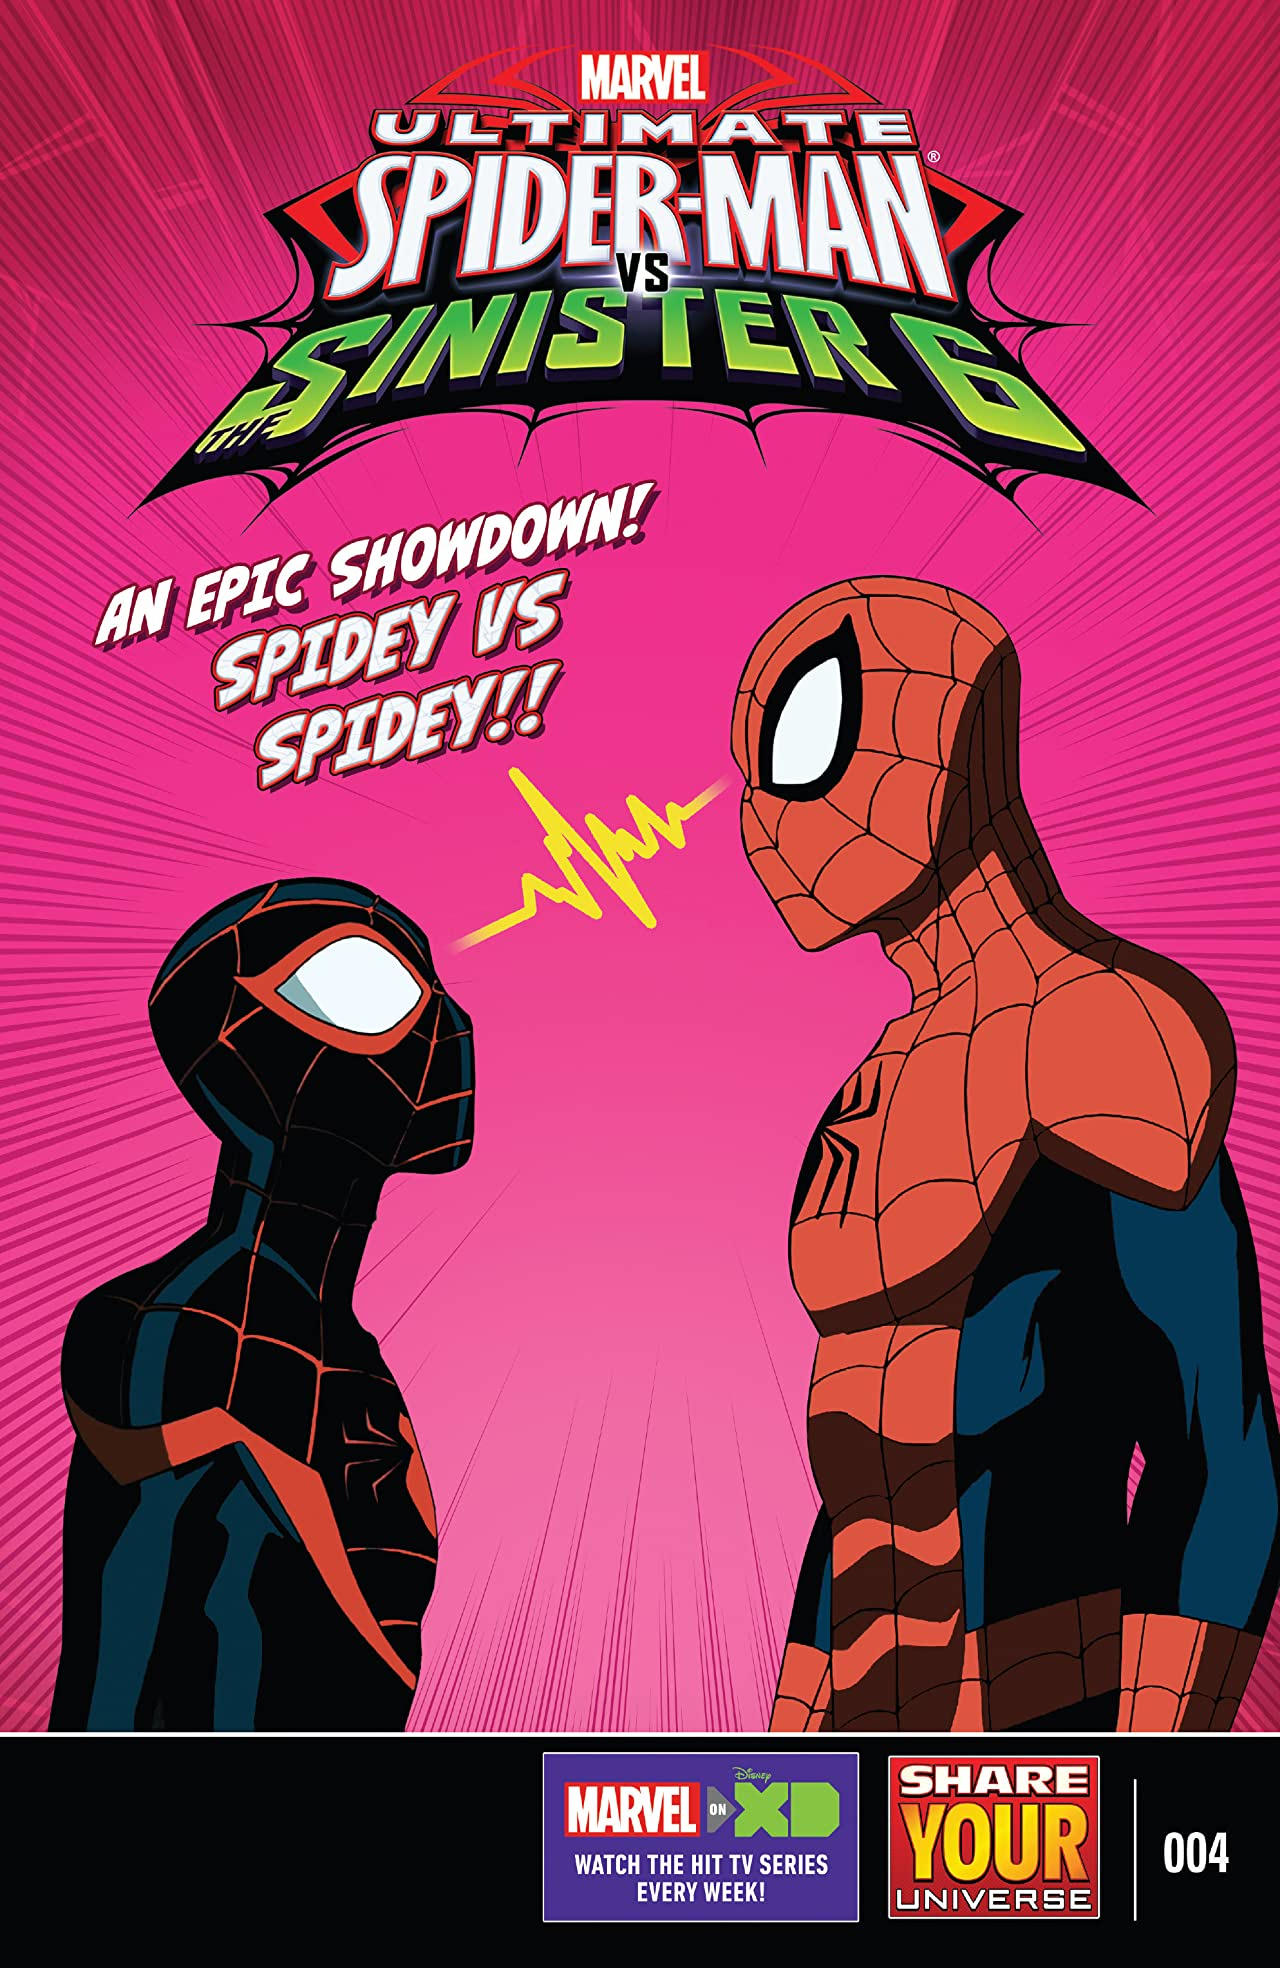 Marvel Universe Ultimate Spider-Man vs. The Sinister Six (2016-2017) #4